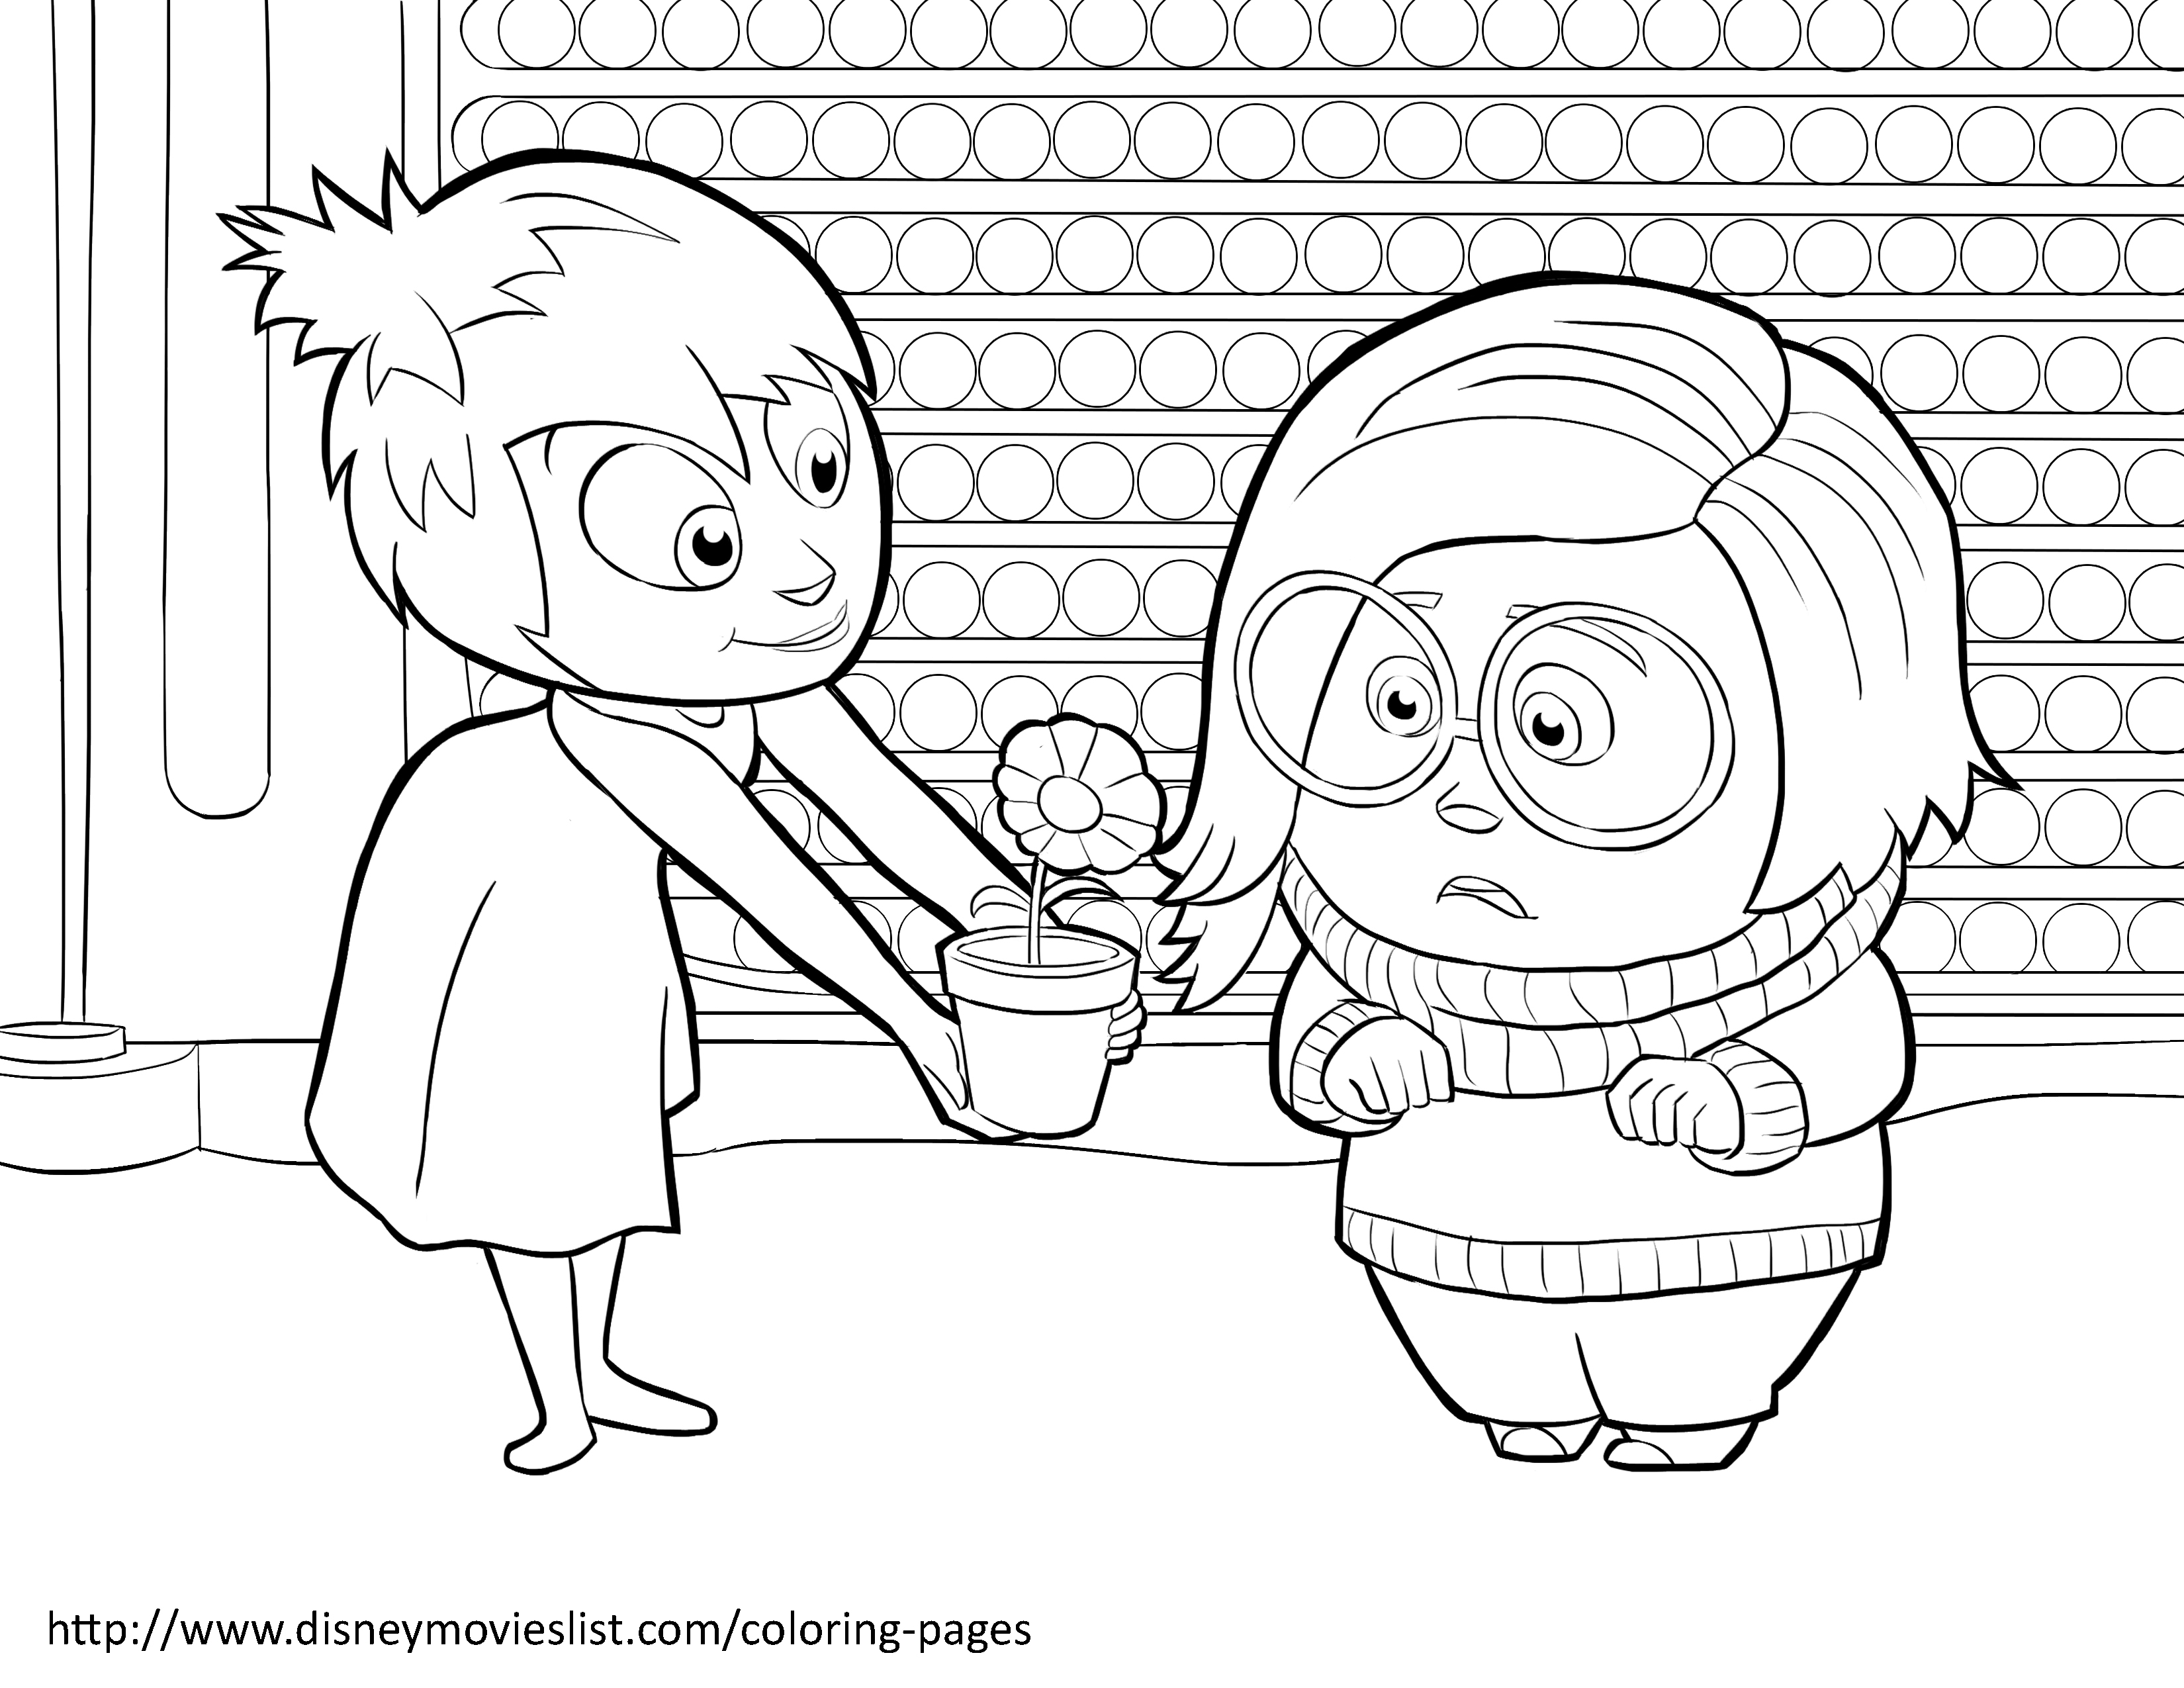 3300x2550 Pixar Inside Out Coloring Pages New Coloring Sheets